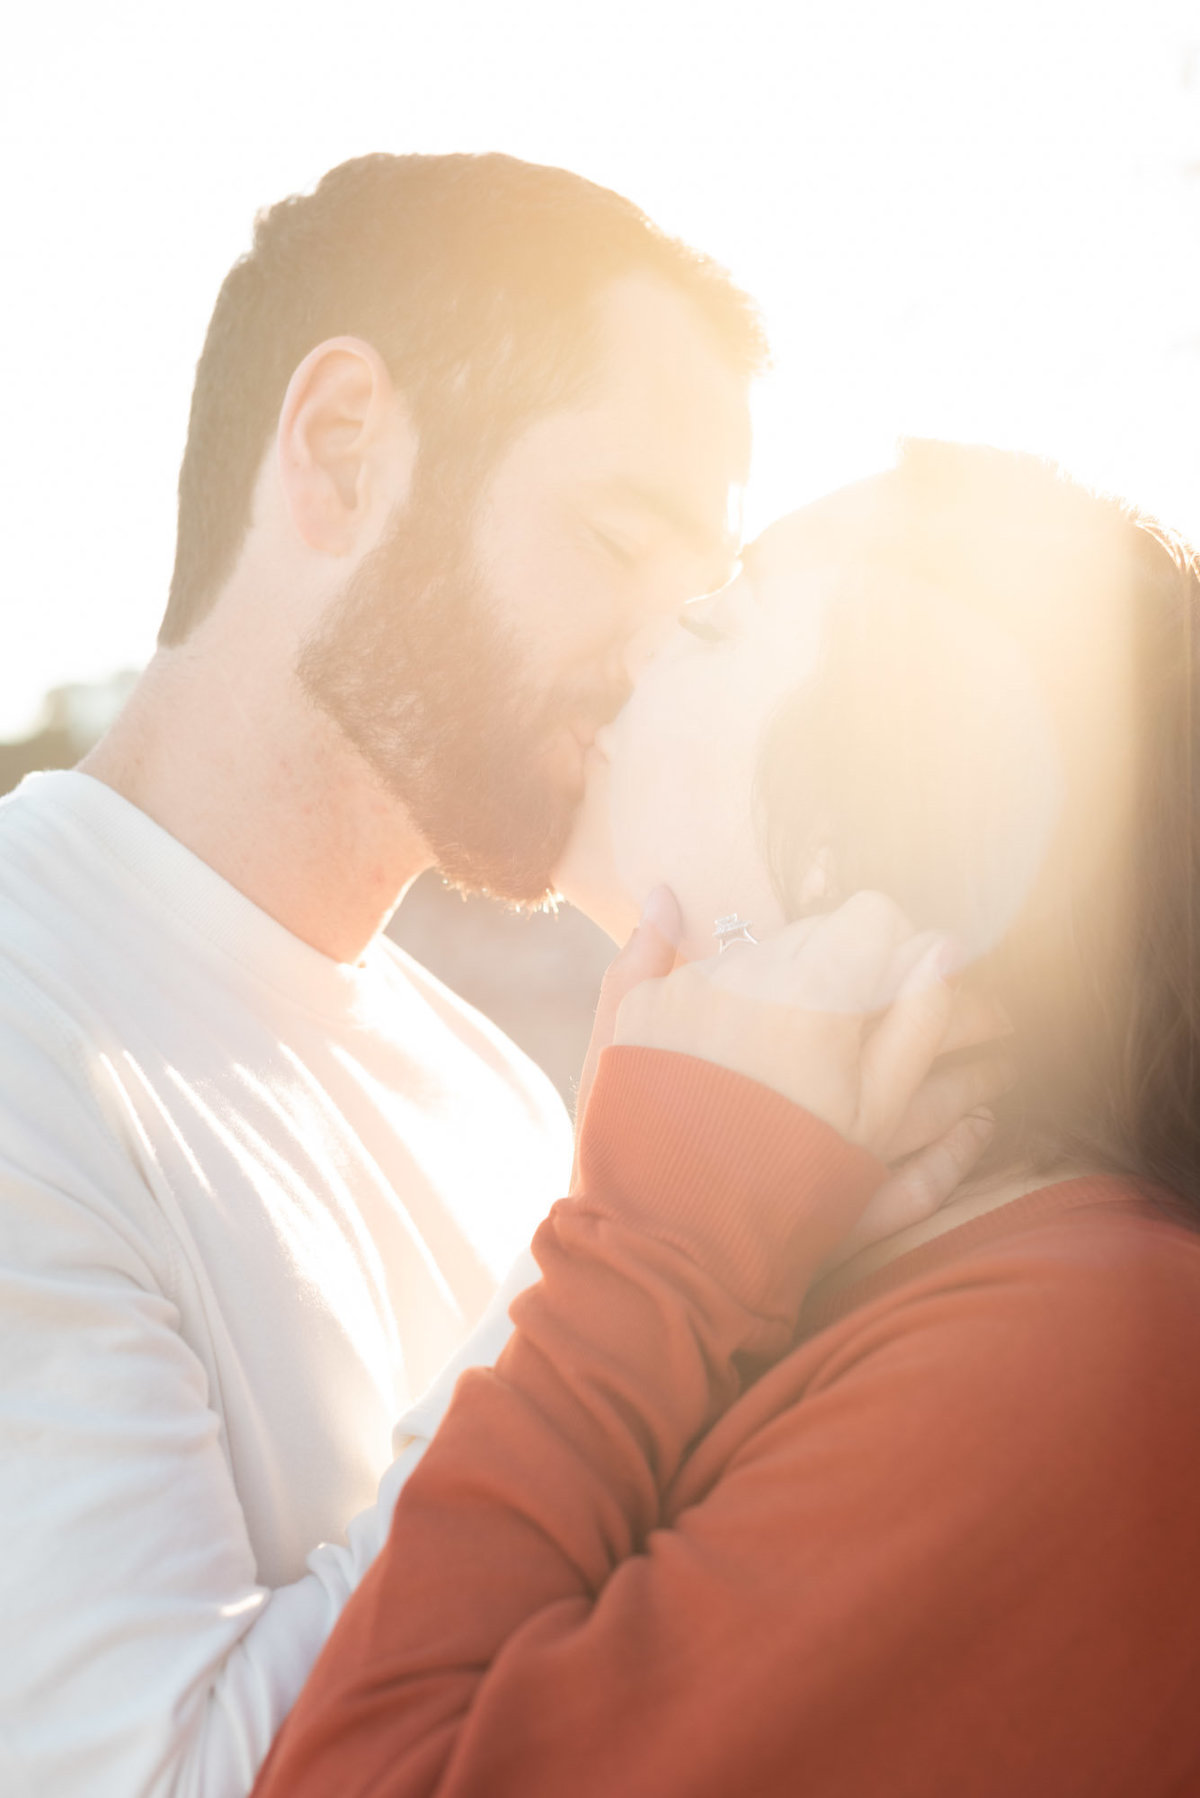 Central-Coast-Engagement-Session-by-San-Luis-Obispo-Wedding-Photographer-Kirsten-Bullard-19